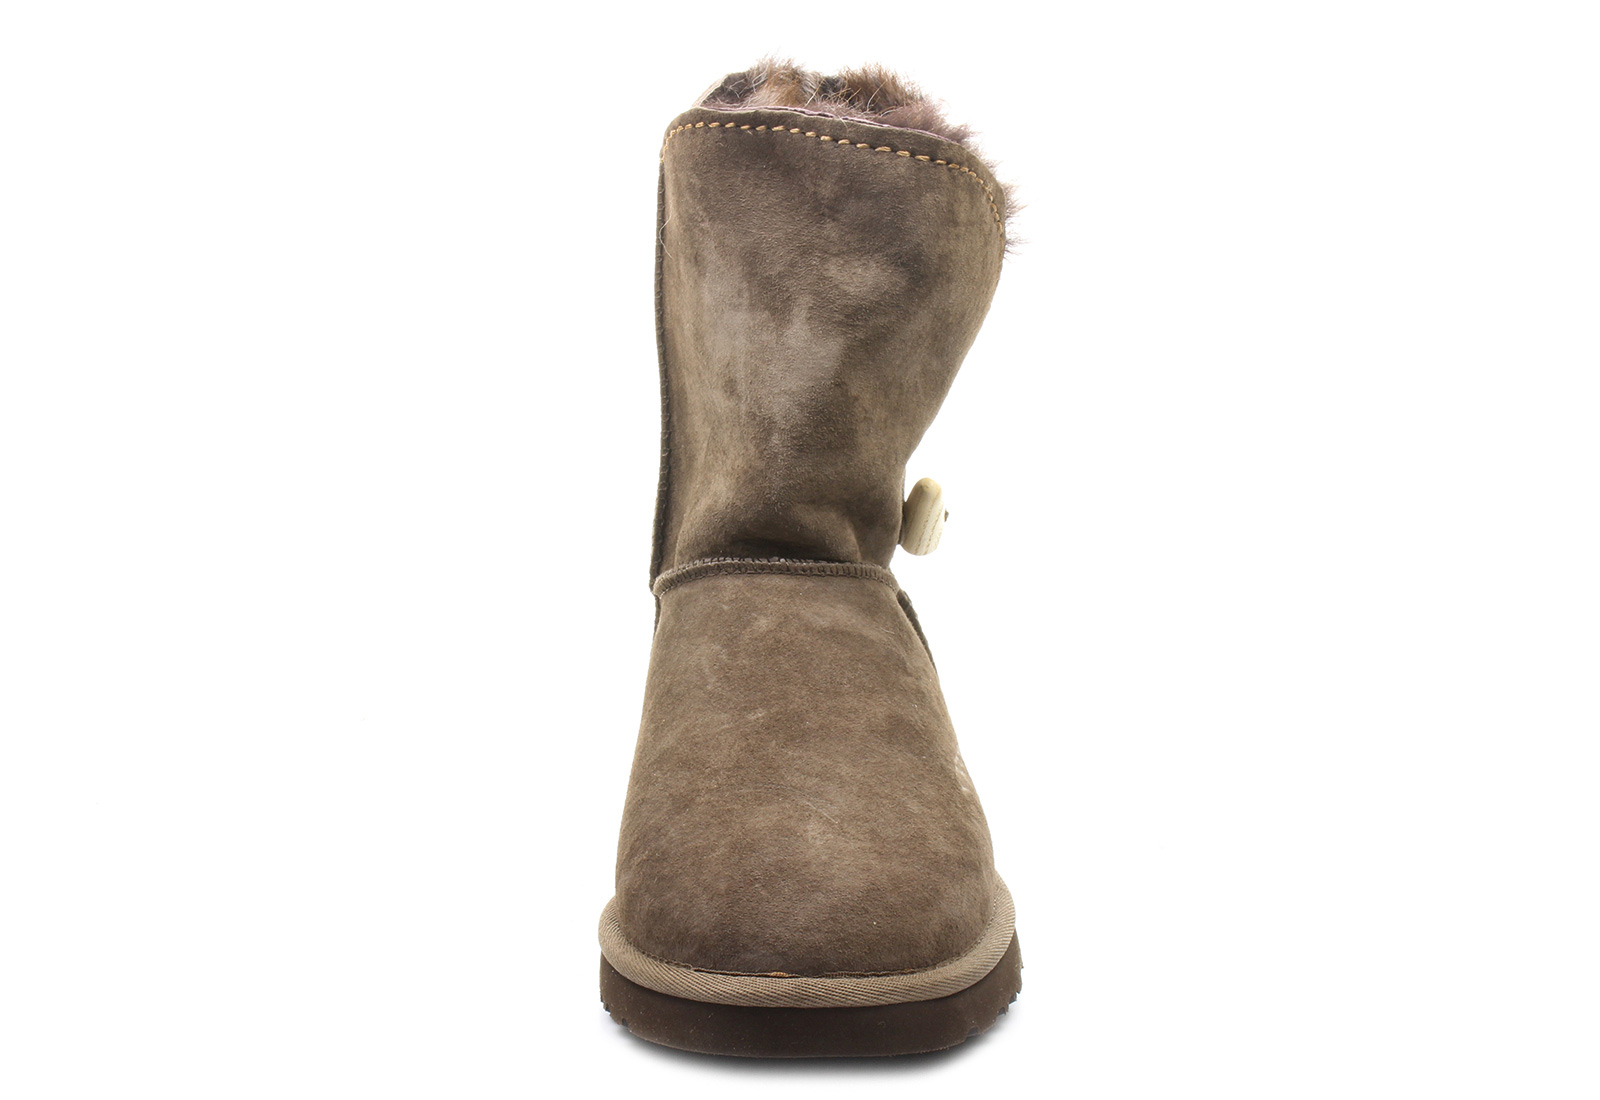 65c757804c1 Ugg Boots Big Kid Sizes - cheap watches mgc-gas.com